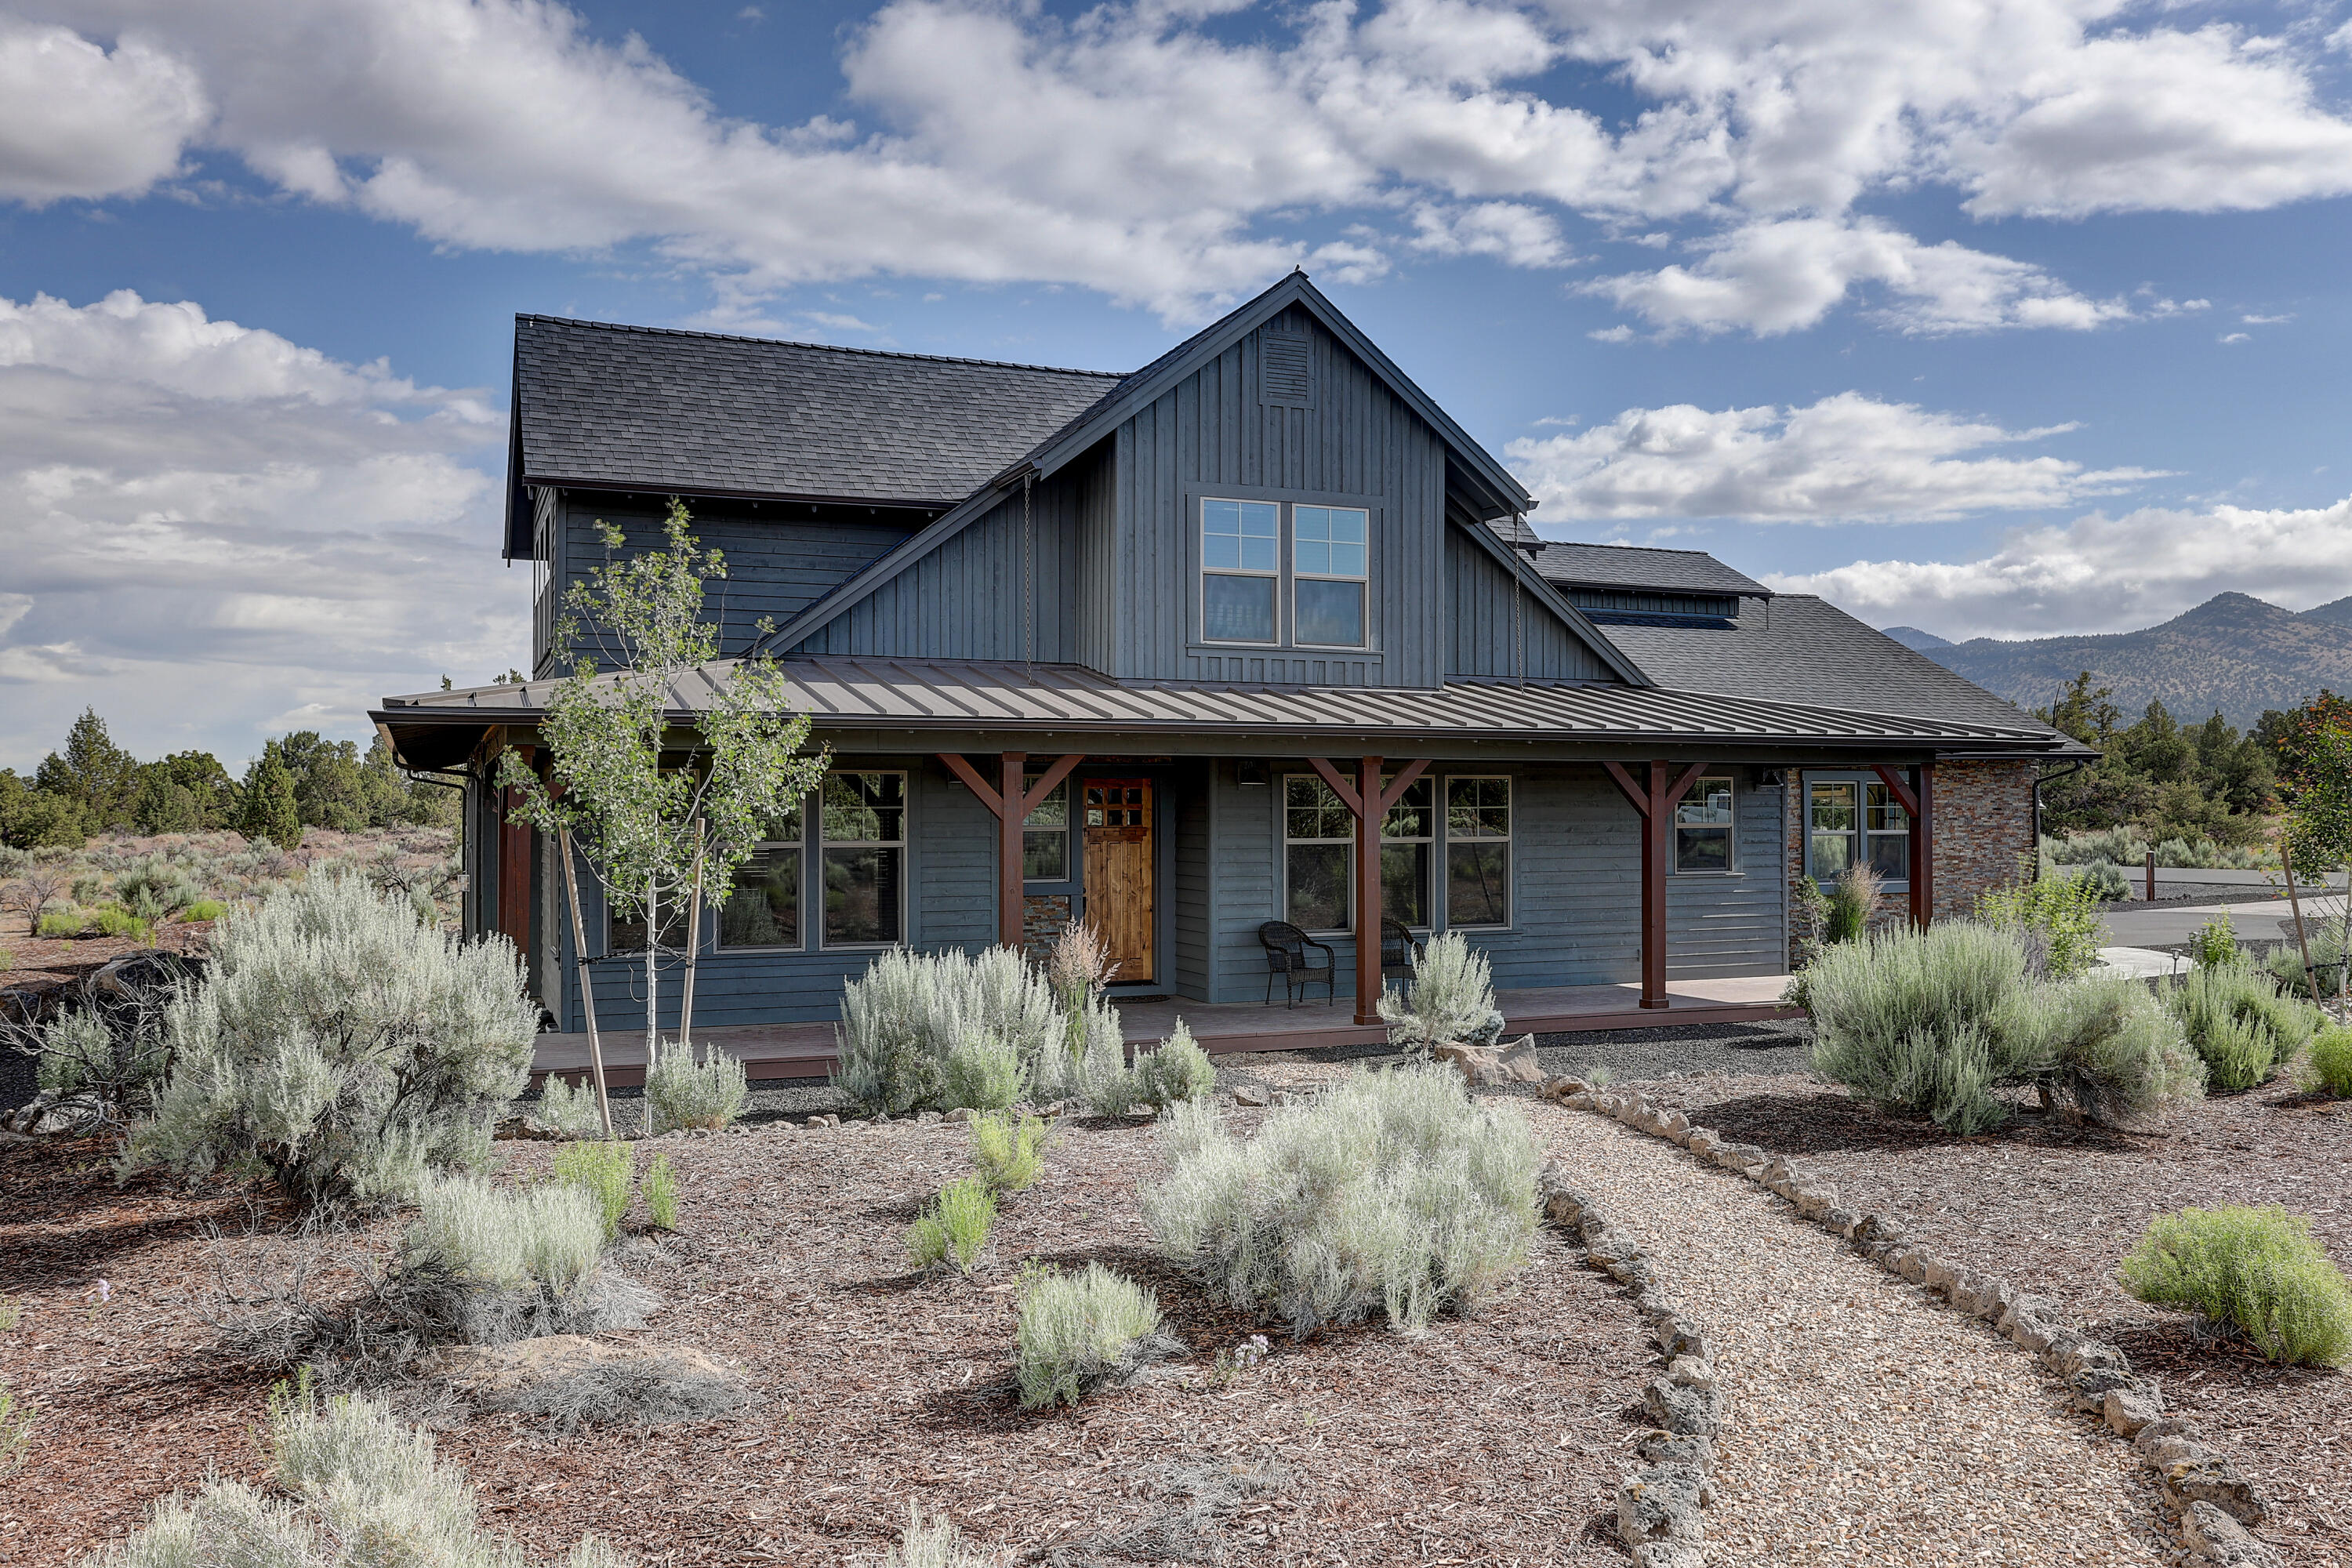 This beautiful ranch-style home welcomes you with a covered front porch into an open living space filled with wide-planked wood floors and natural wood trim. the light walls give a more current twist to this homestead. In the modern kitchen you'll find two granite islands, tons of storage, and a 5-burner gas stove top. The huge master bedroom is on the main with two walk-in closets and a master bathroom that includes a tile shower and soaking tub. The office, or 4th bedroom, includes built-in desk and wall bed for guests. the laundry room is filled with storage cabinets and utility sink. Upstairs features a bonus room, and 2 bedrooms, one with Cascade Mountain views. The 3-car garage has an extended length 2-car section and includes cabinets and work bench. Cozy up in front of the gas fireplace or relax on the back patio while enjoying the view of Powell Butte and acres of BLM land that the property backs to, instead of working on the low-maintenance natural landscaping.